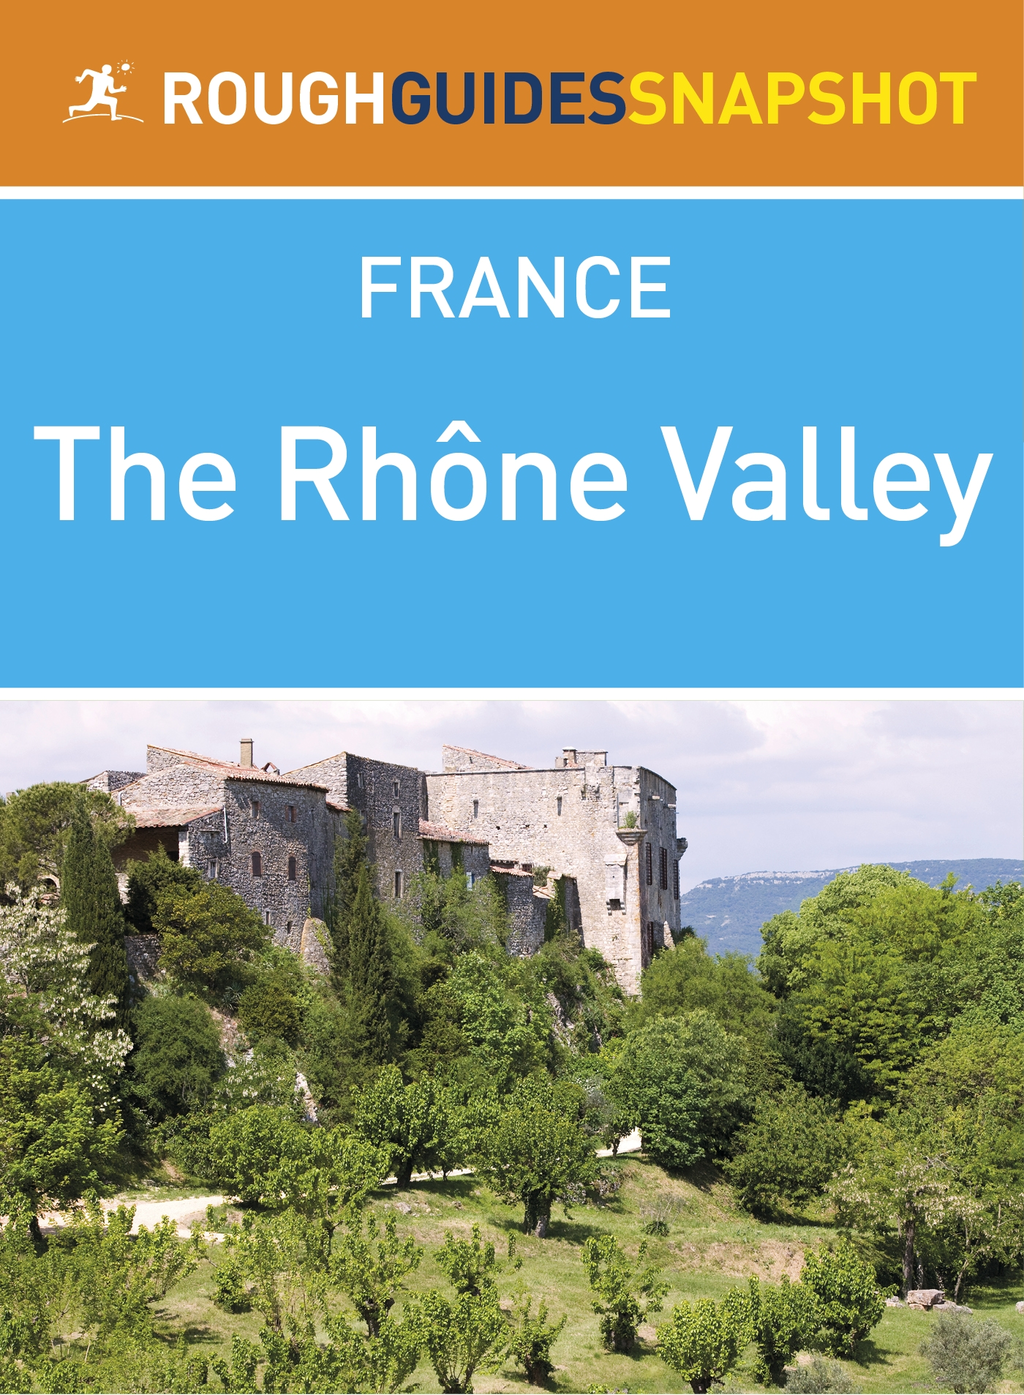 The Rh�ne Valley Rough Guides Snapshot France (includes Lyon,  Beaujolais,  Vienne,  St-Romain-en-Gal: Mus�e Gallo-Romain,  Saint-�tienne,  Valence and Mon